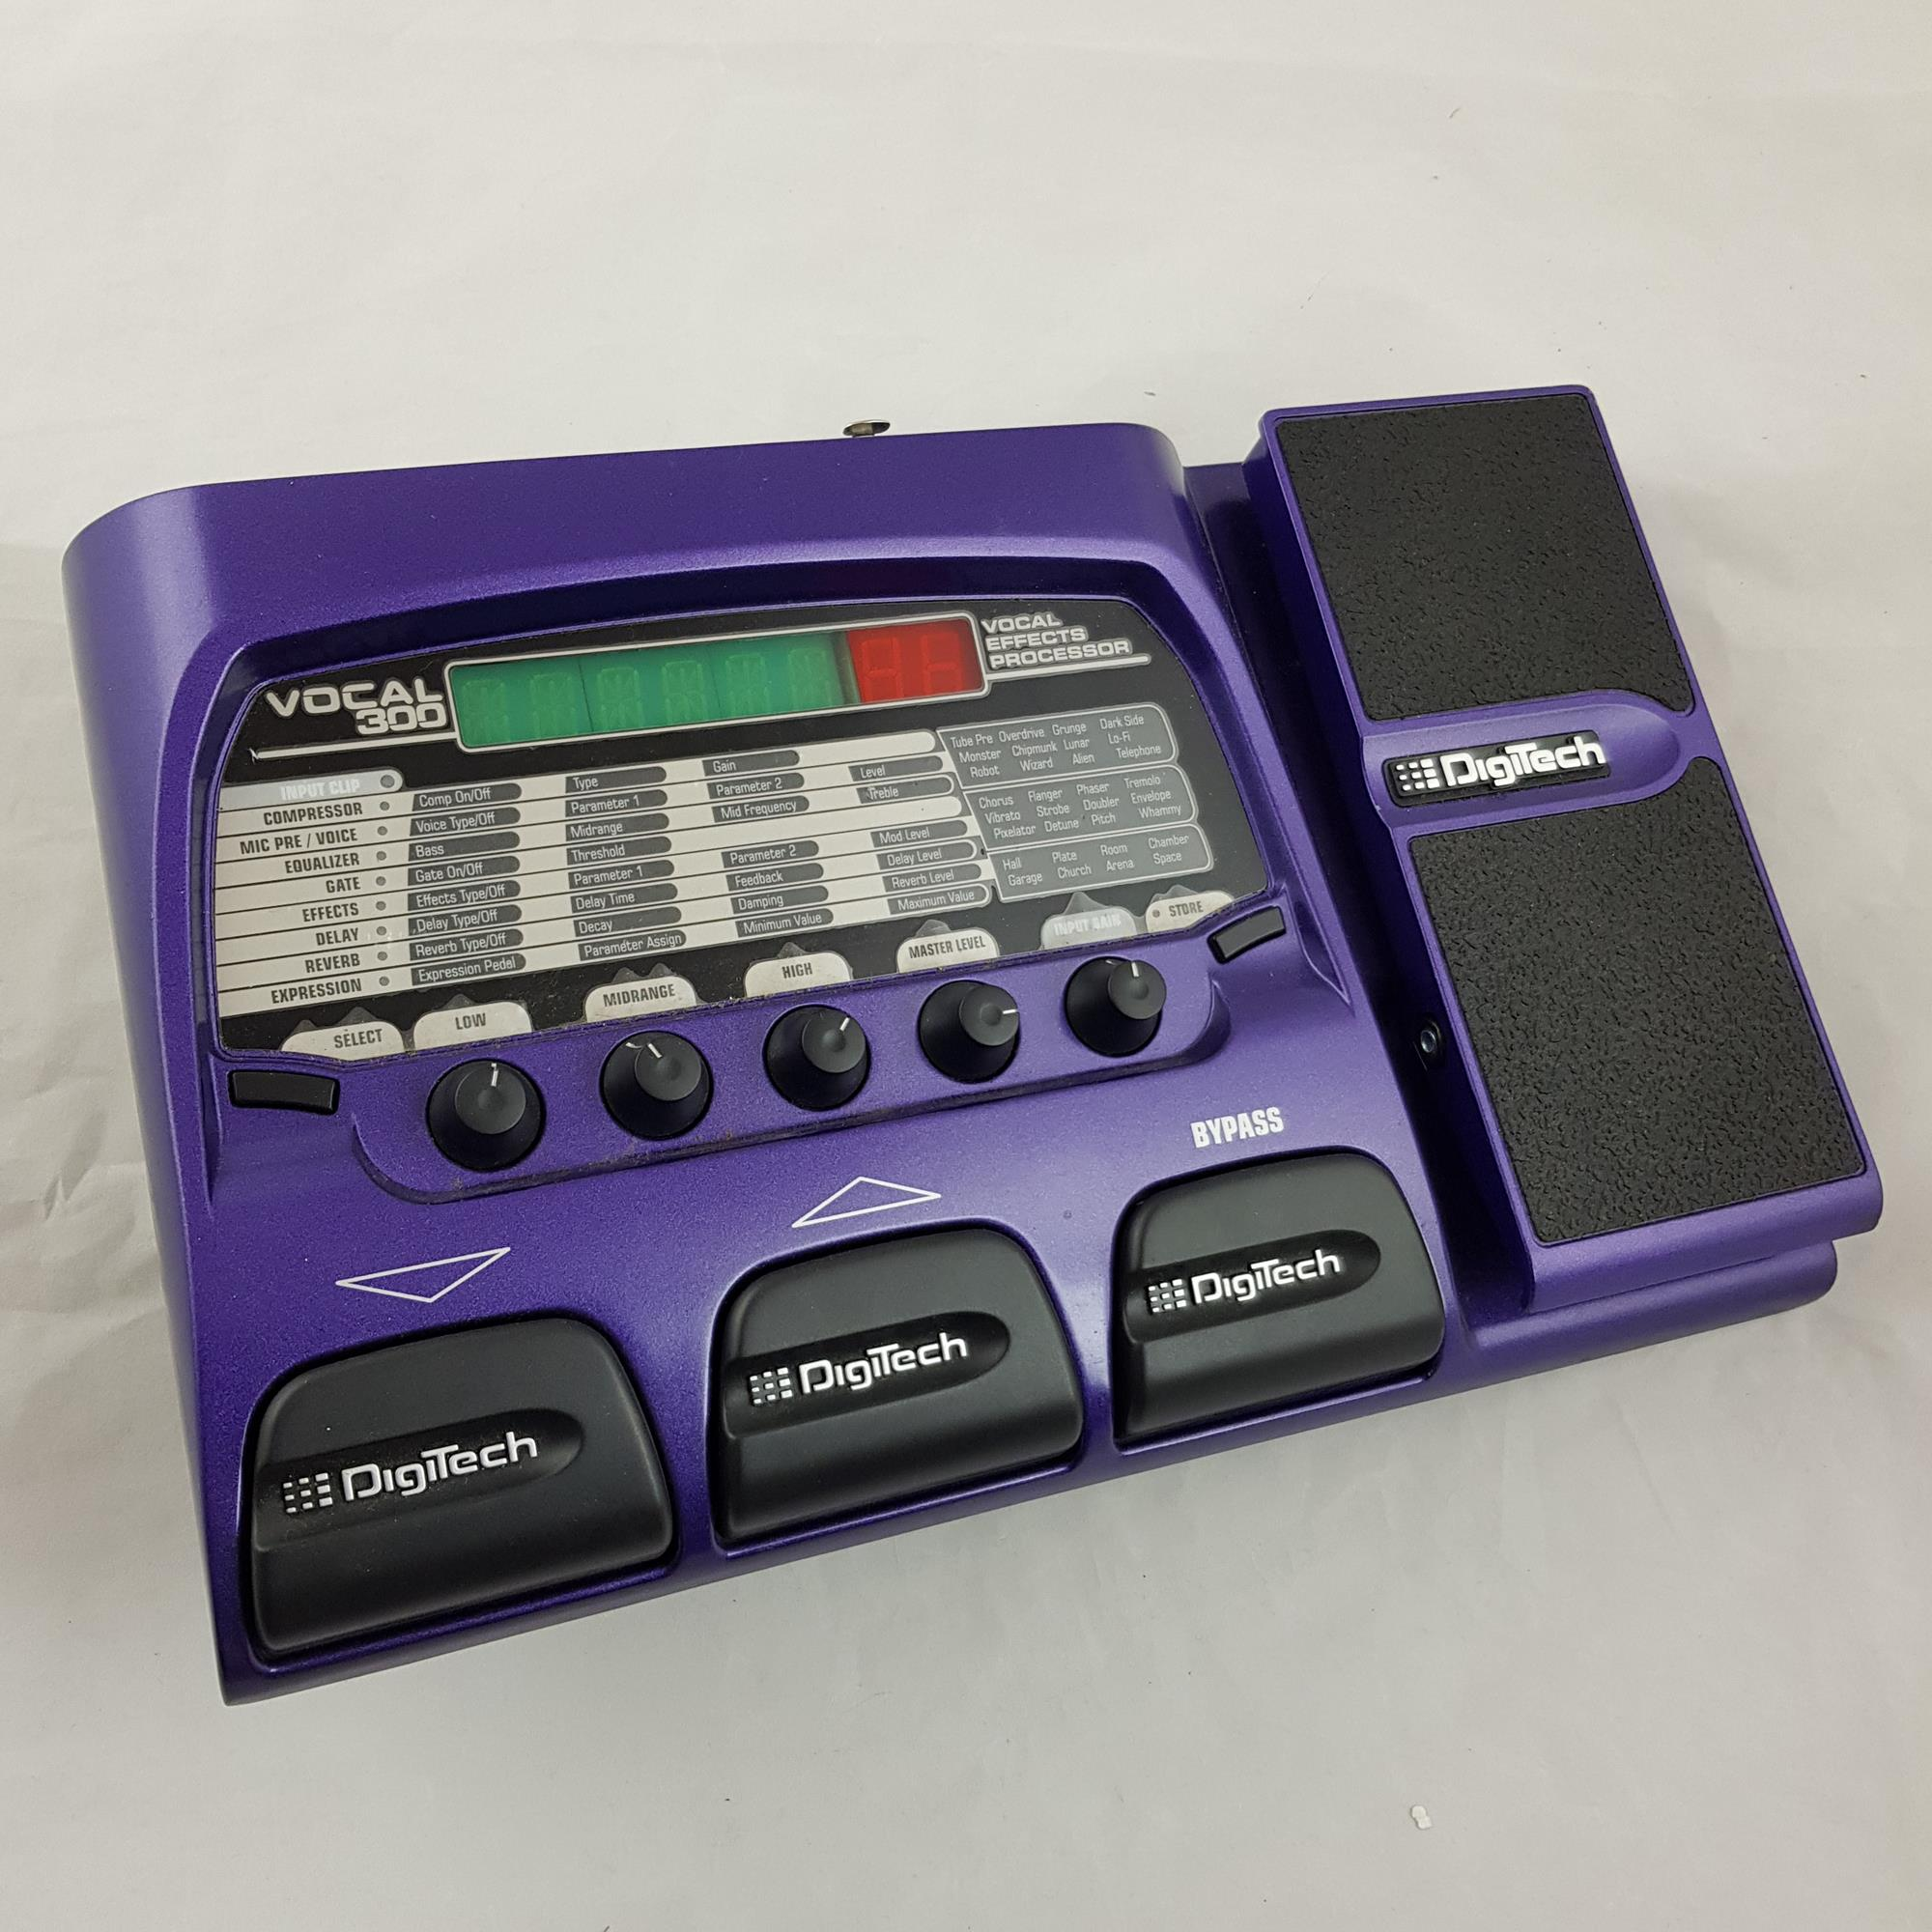 DIGITECH-VOCAL-300-VOCAL-EFFECTS-PROCESSOR-sku-1610994640911